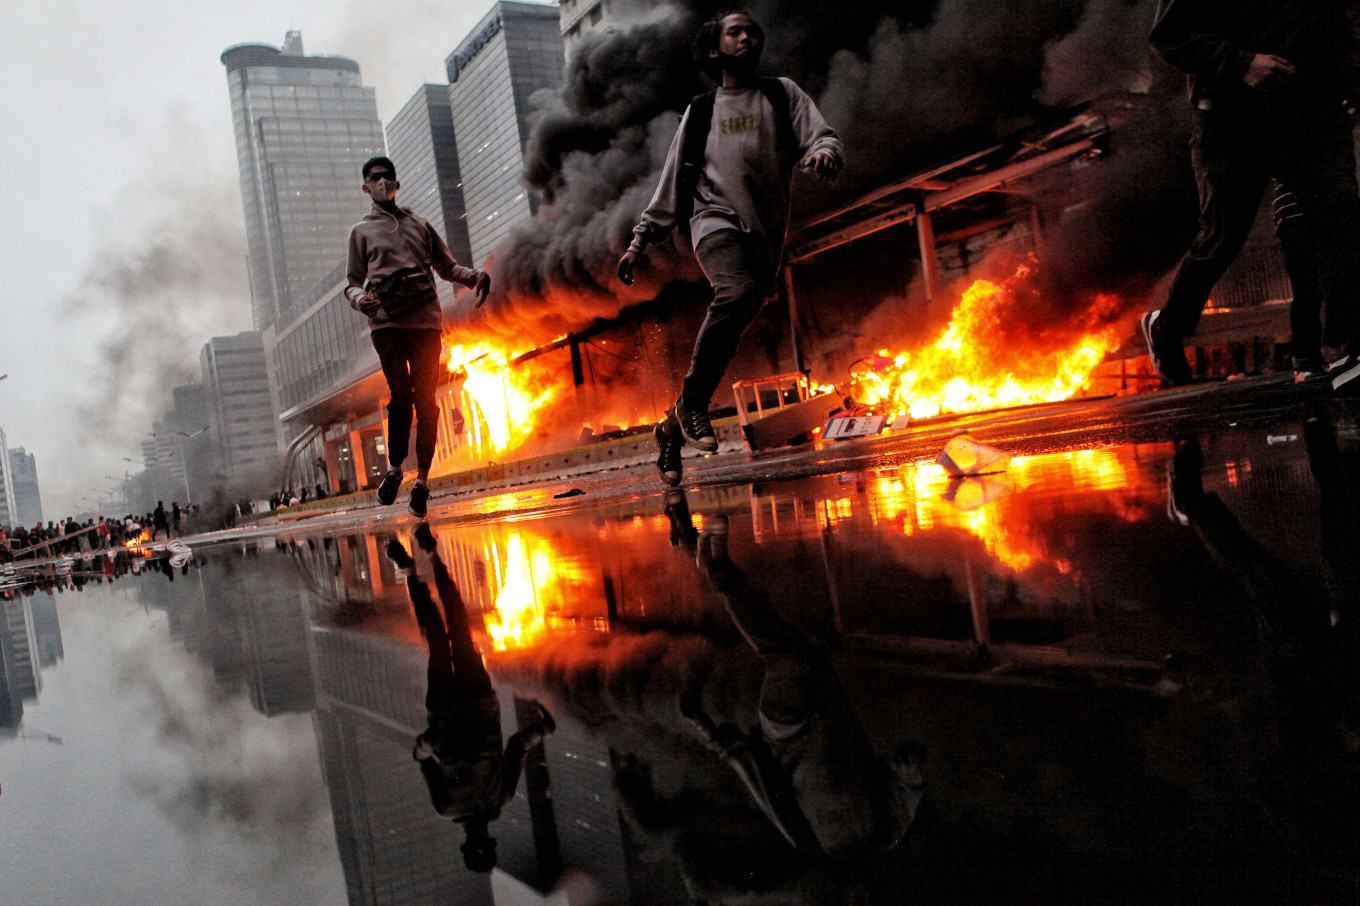 Facilities set ablaze as clashes break out in Jakarta during jobs law protest